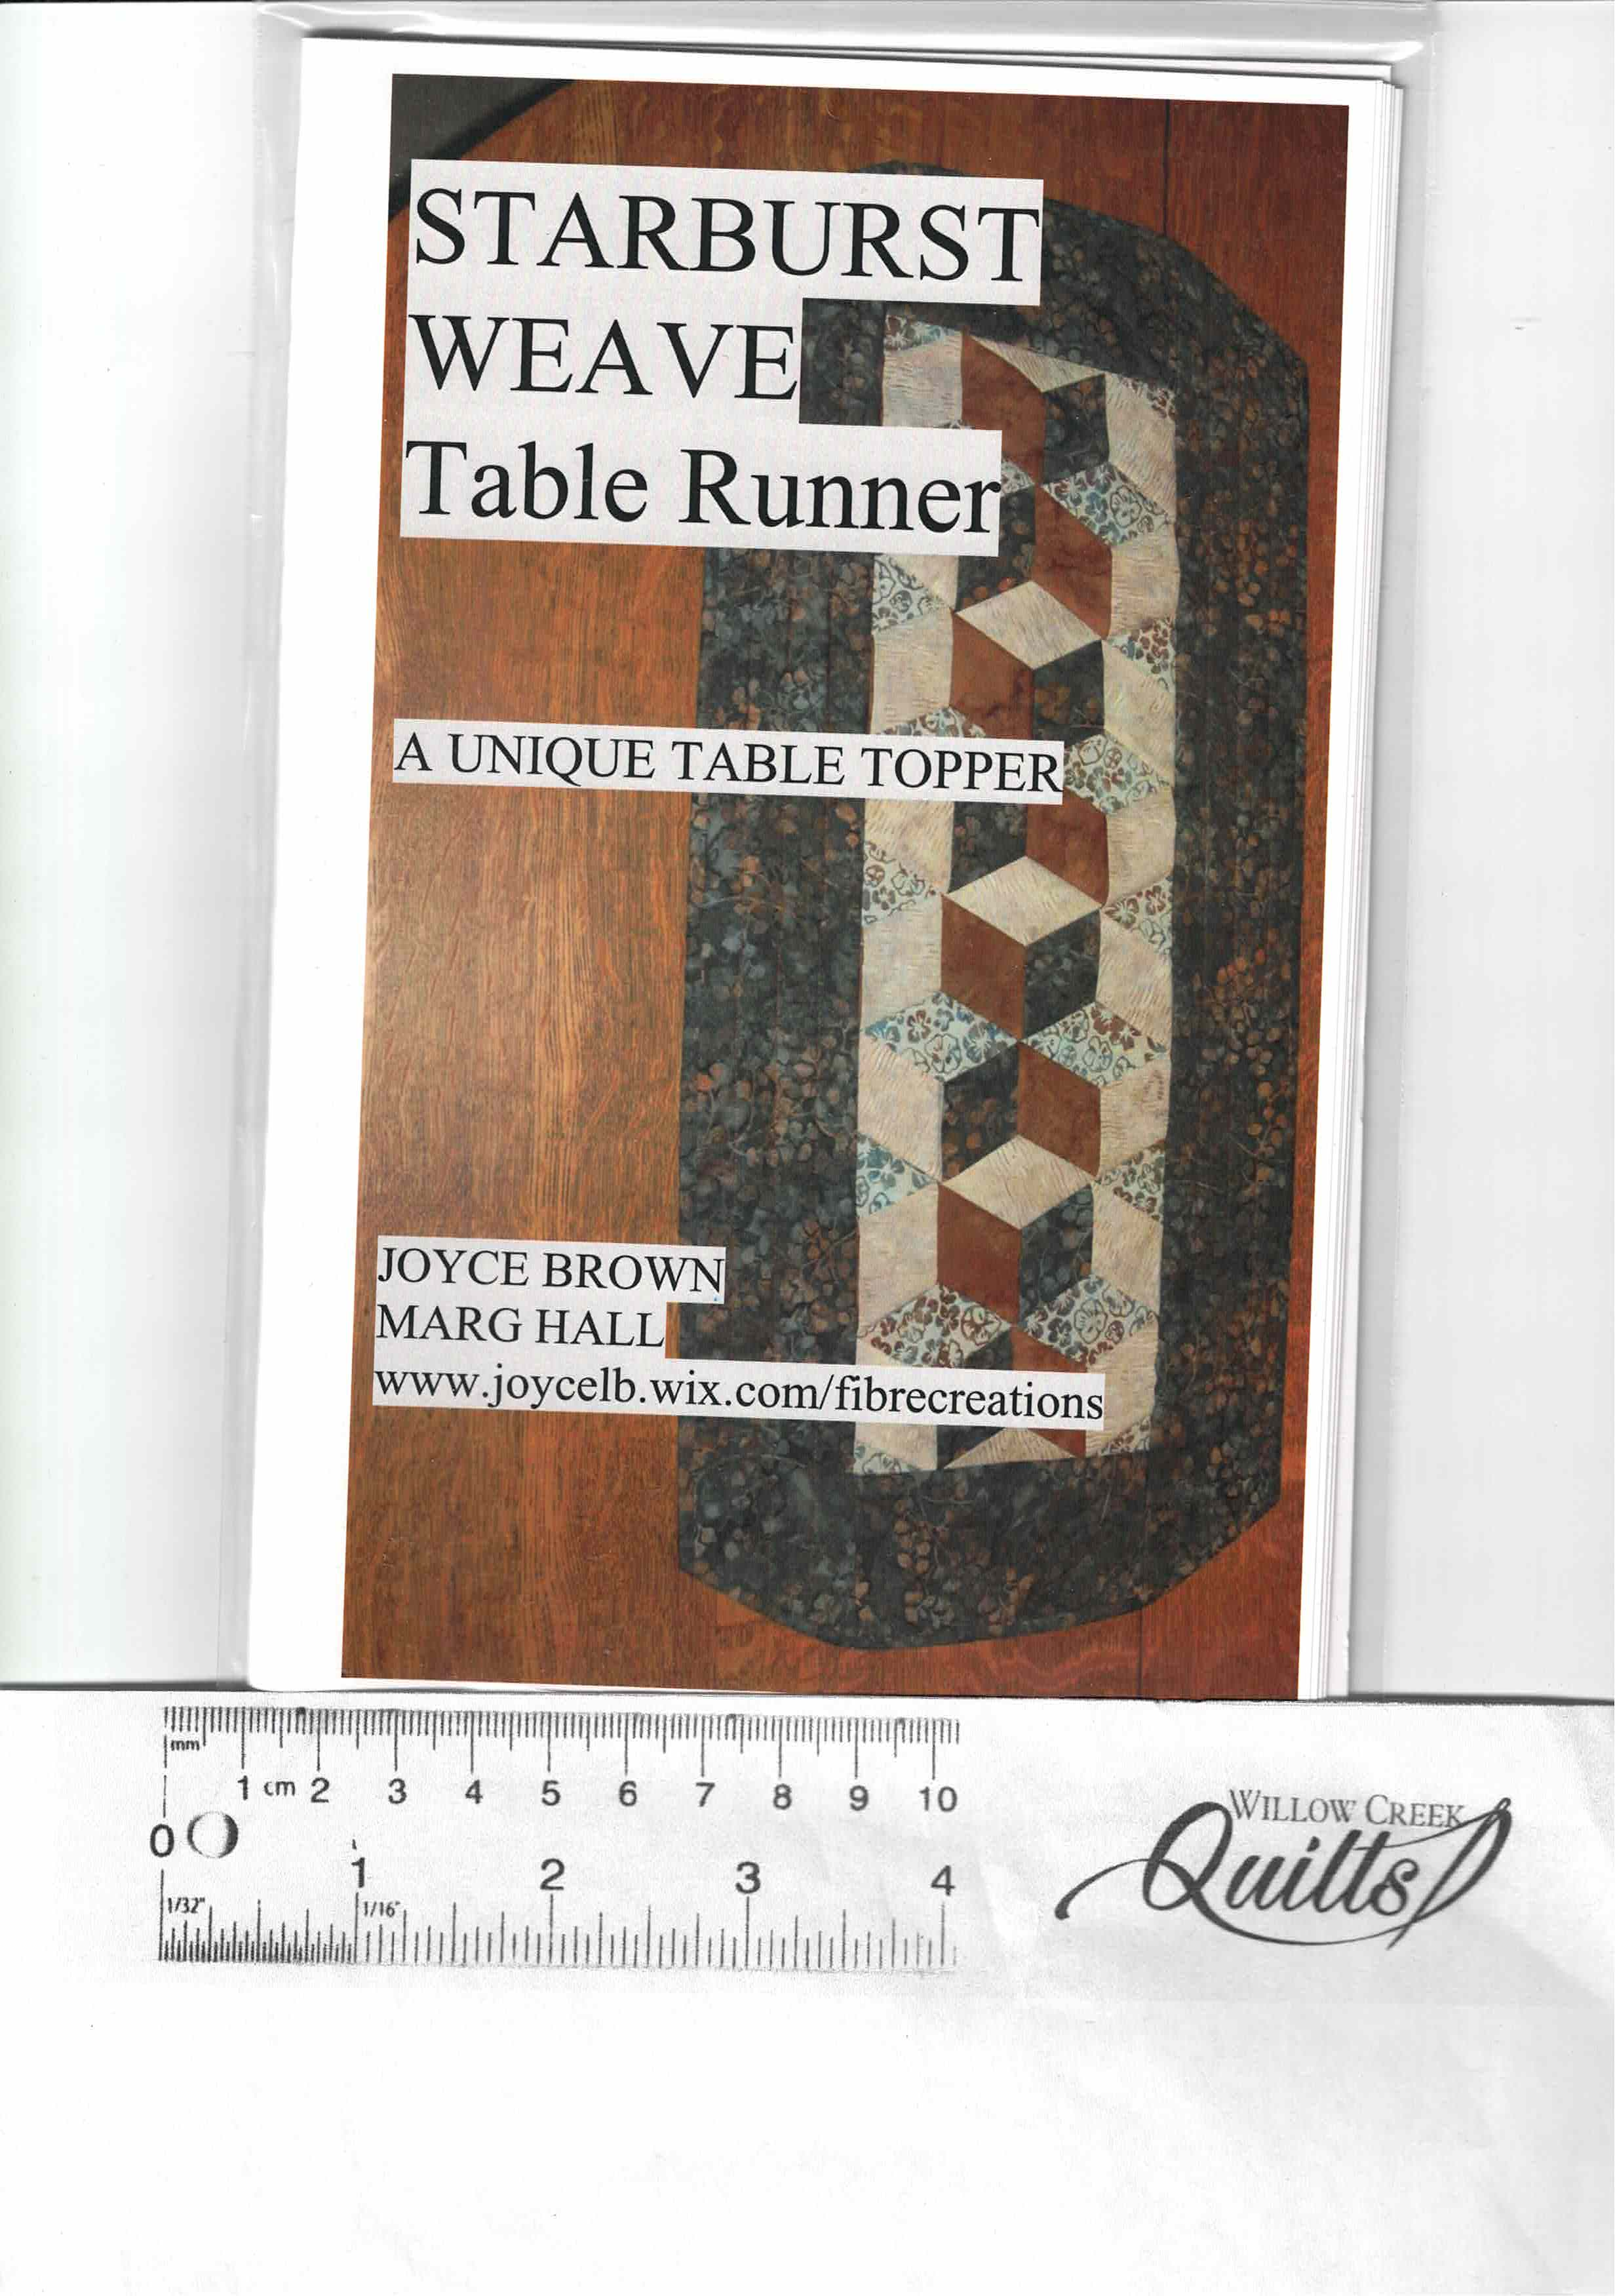 Starburst Weave Table Runner pattern - 09341271